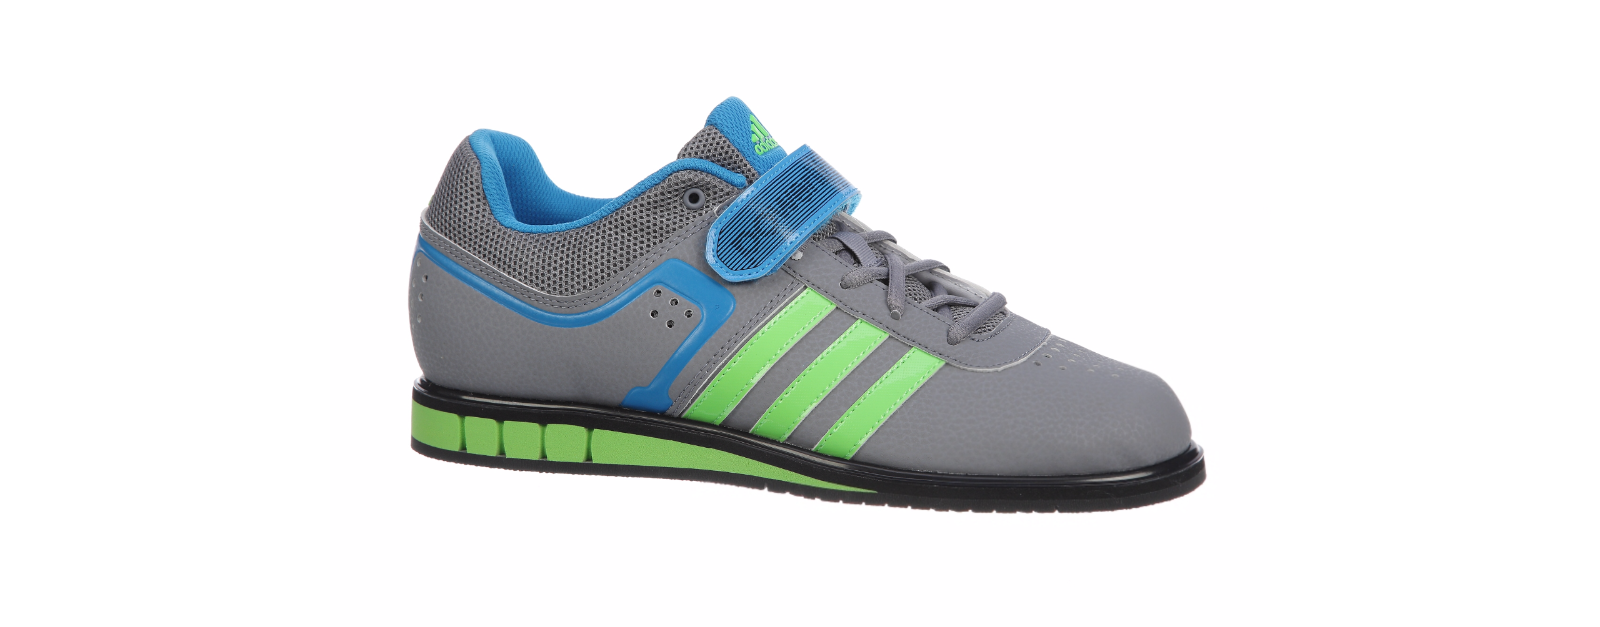 Adidas Powerlift 2 Trainer - Men's Power Lifting shoes - Grey Green bluee M18769